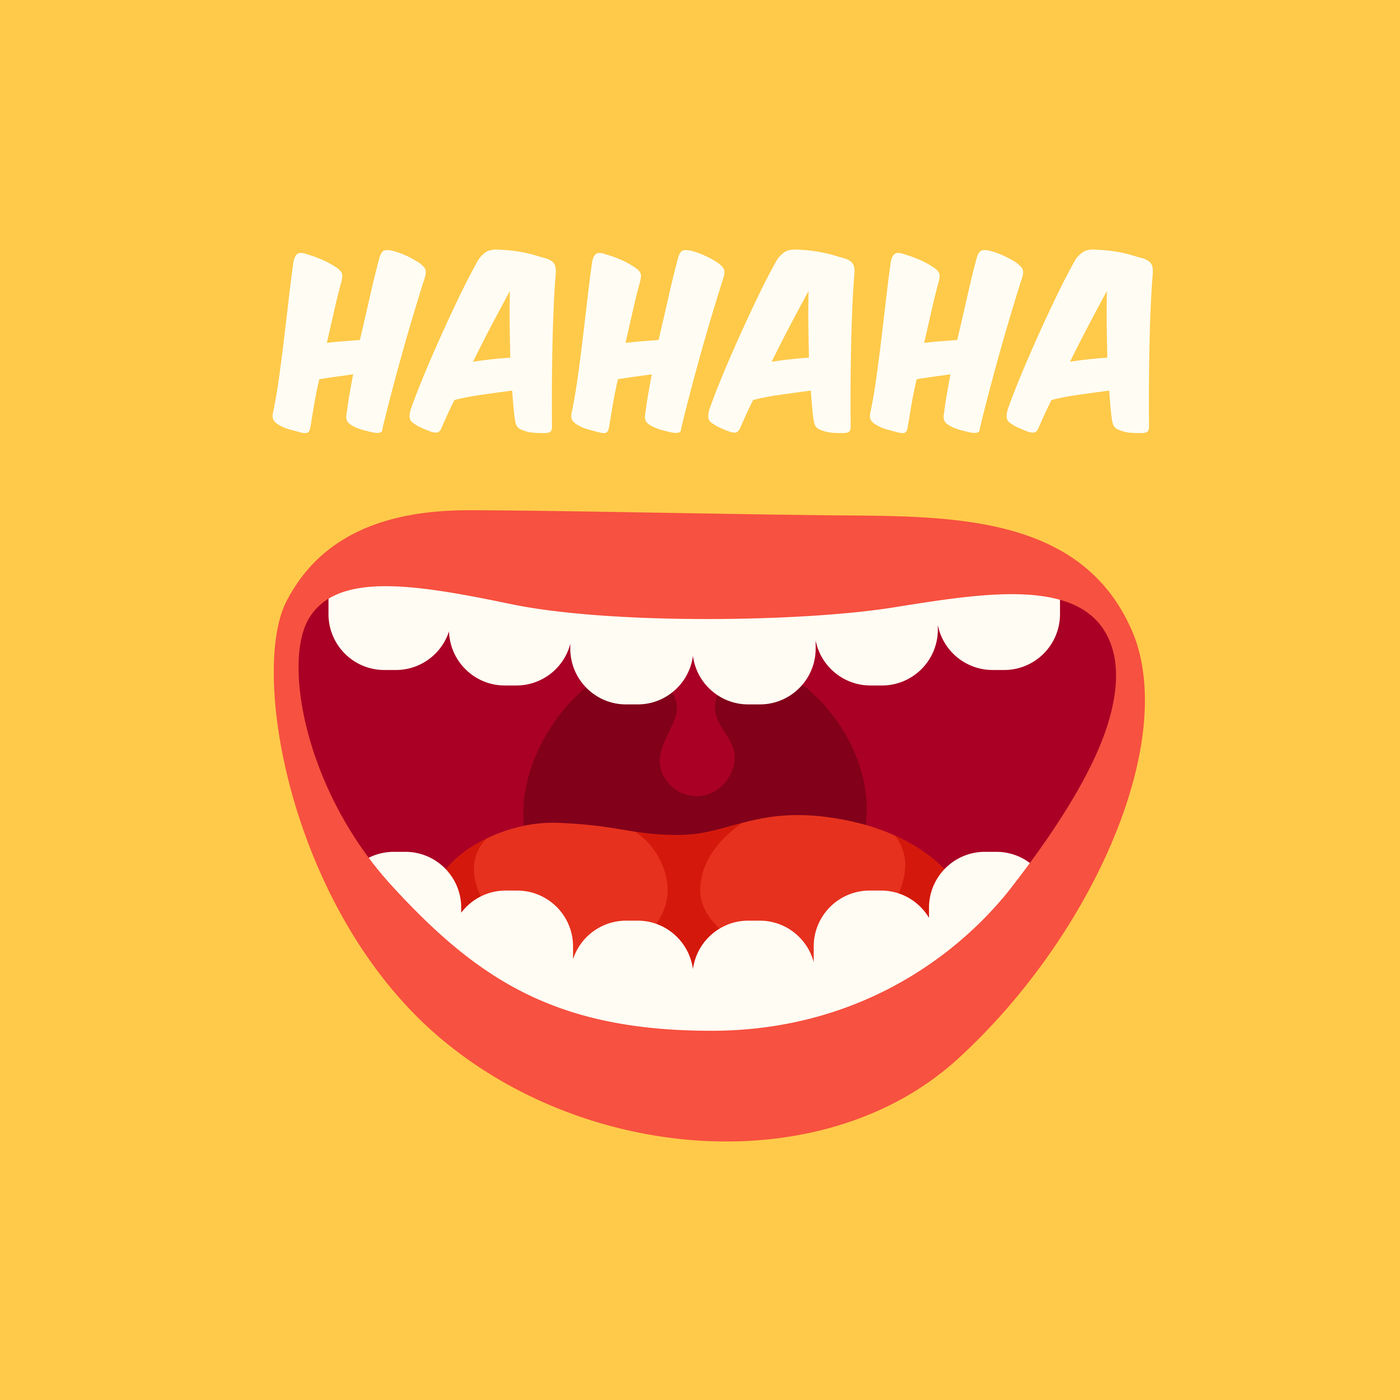 Laughing Mouth April Fools Day Loud Laugh And Lol Vector Yellow